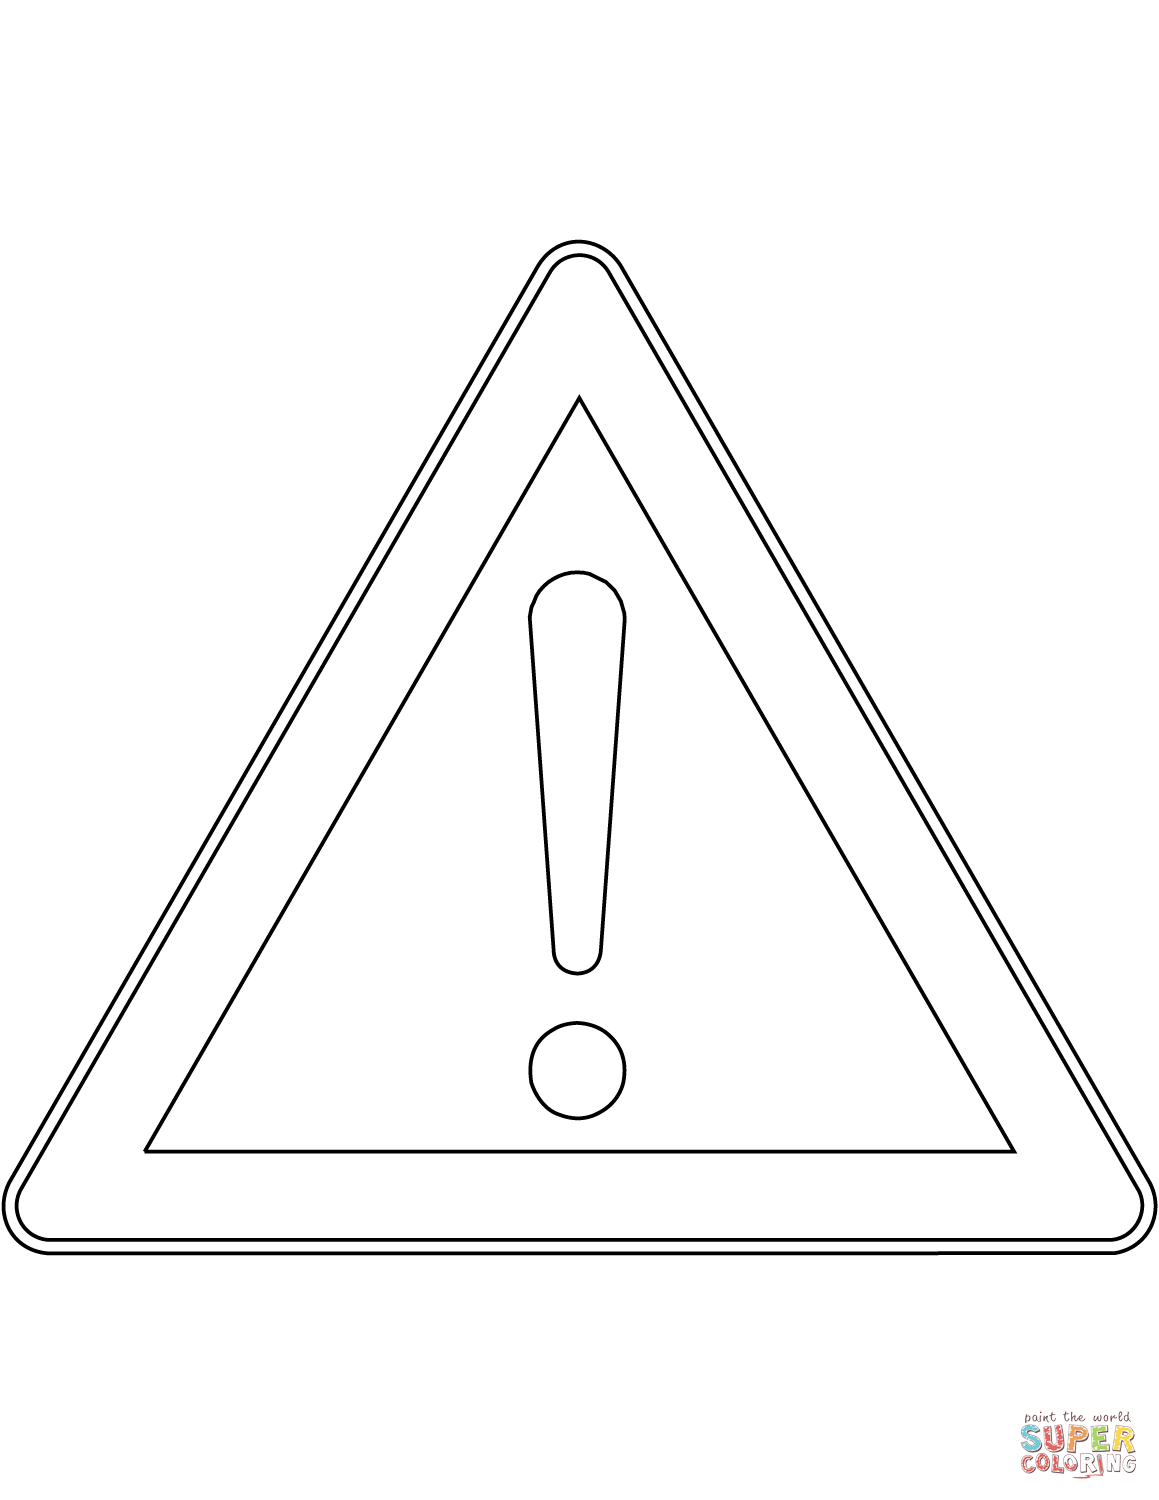 caution sign coloring page road signs coloring pages at getcoloringscom free page sign caution coloring